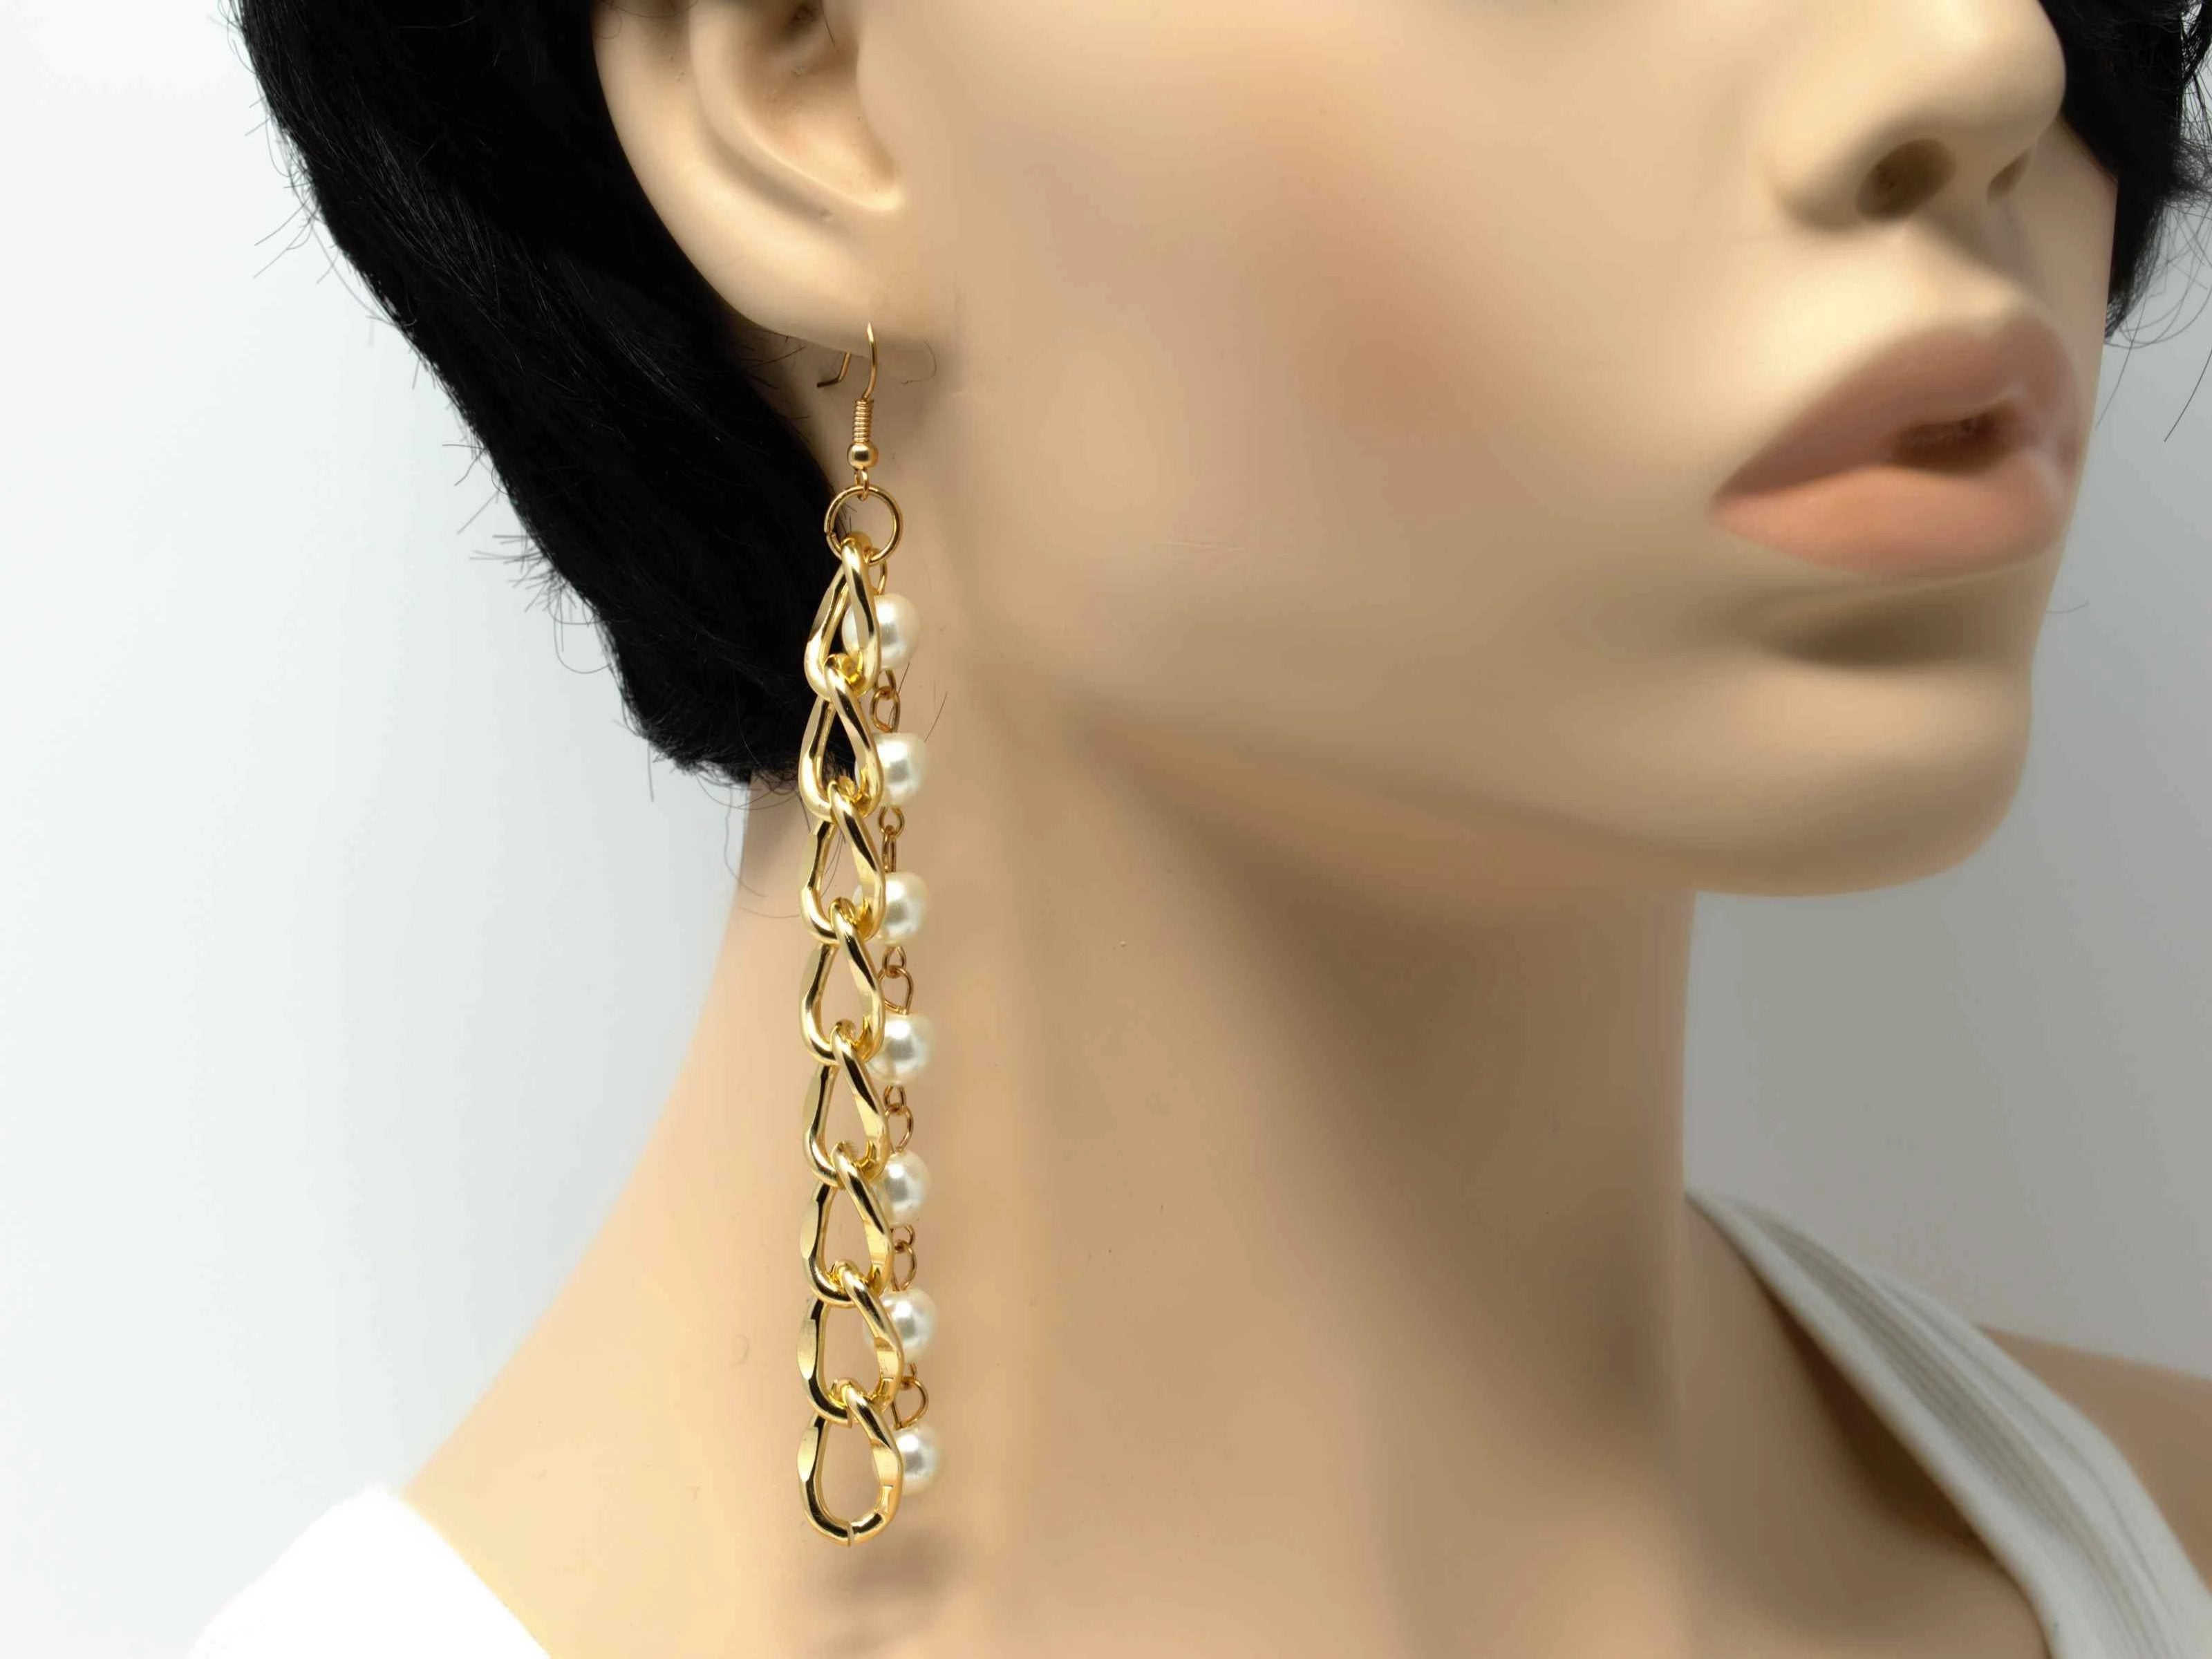 An elegant gold drop dangle earring with pearl accents and a fish hook clasp.